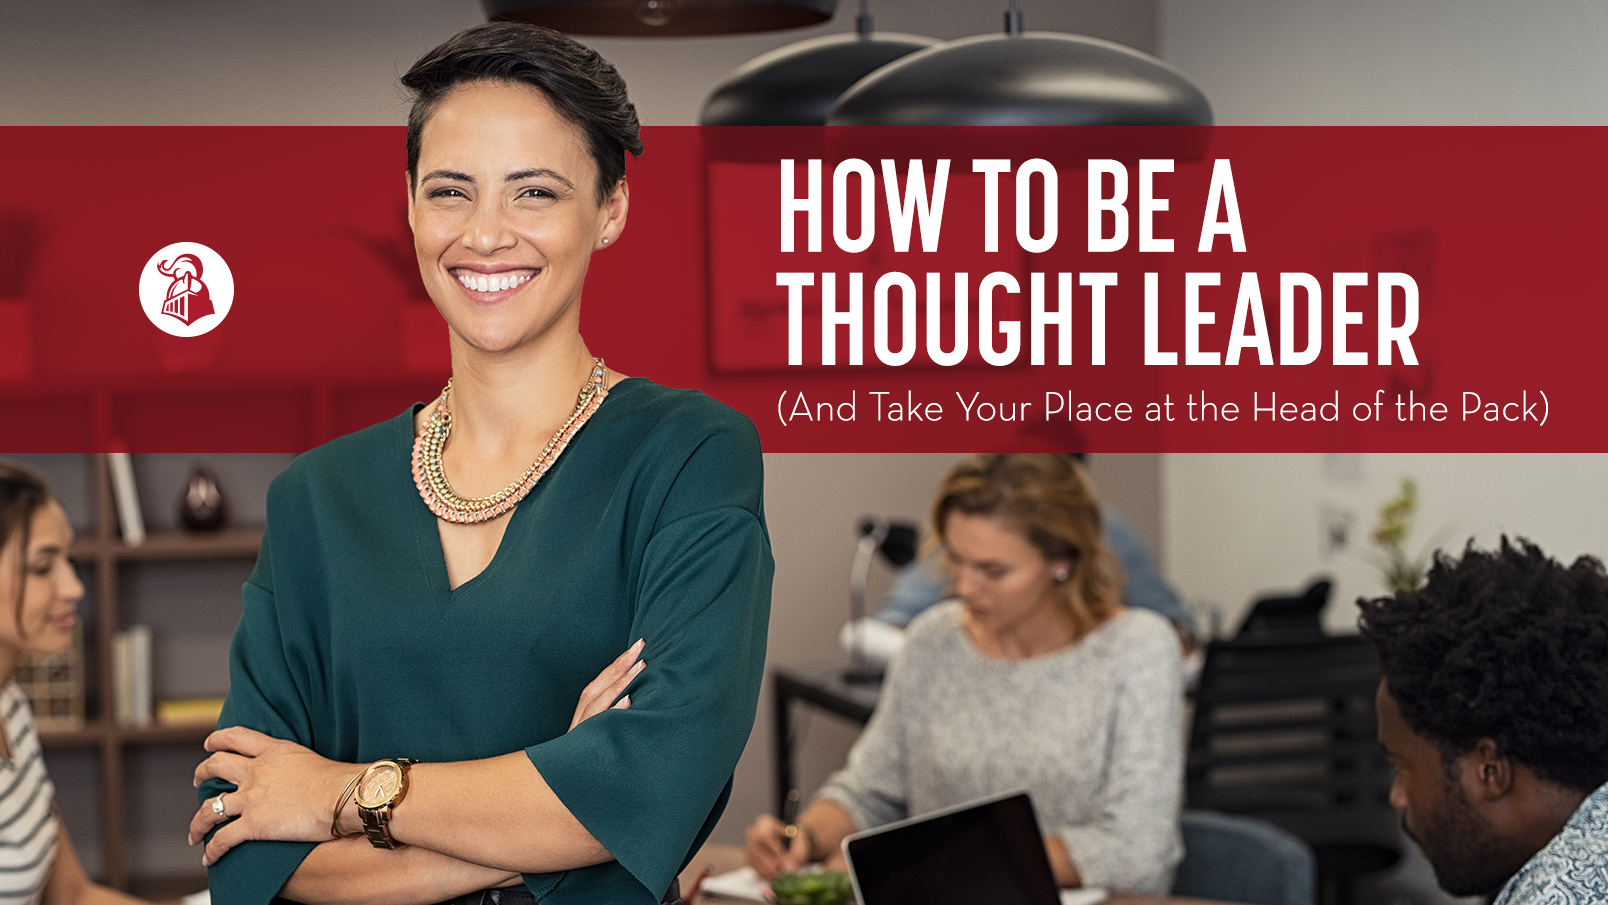 How to Be a Thought Leader (And Take Your Place at the Head of the Pack)